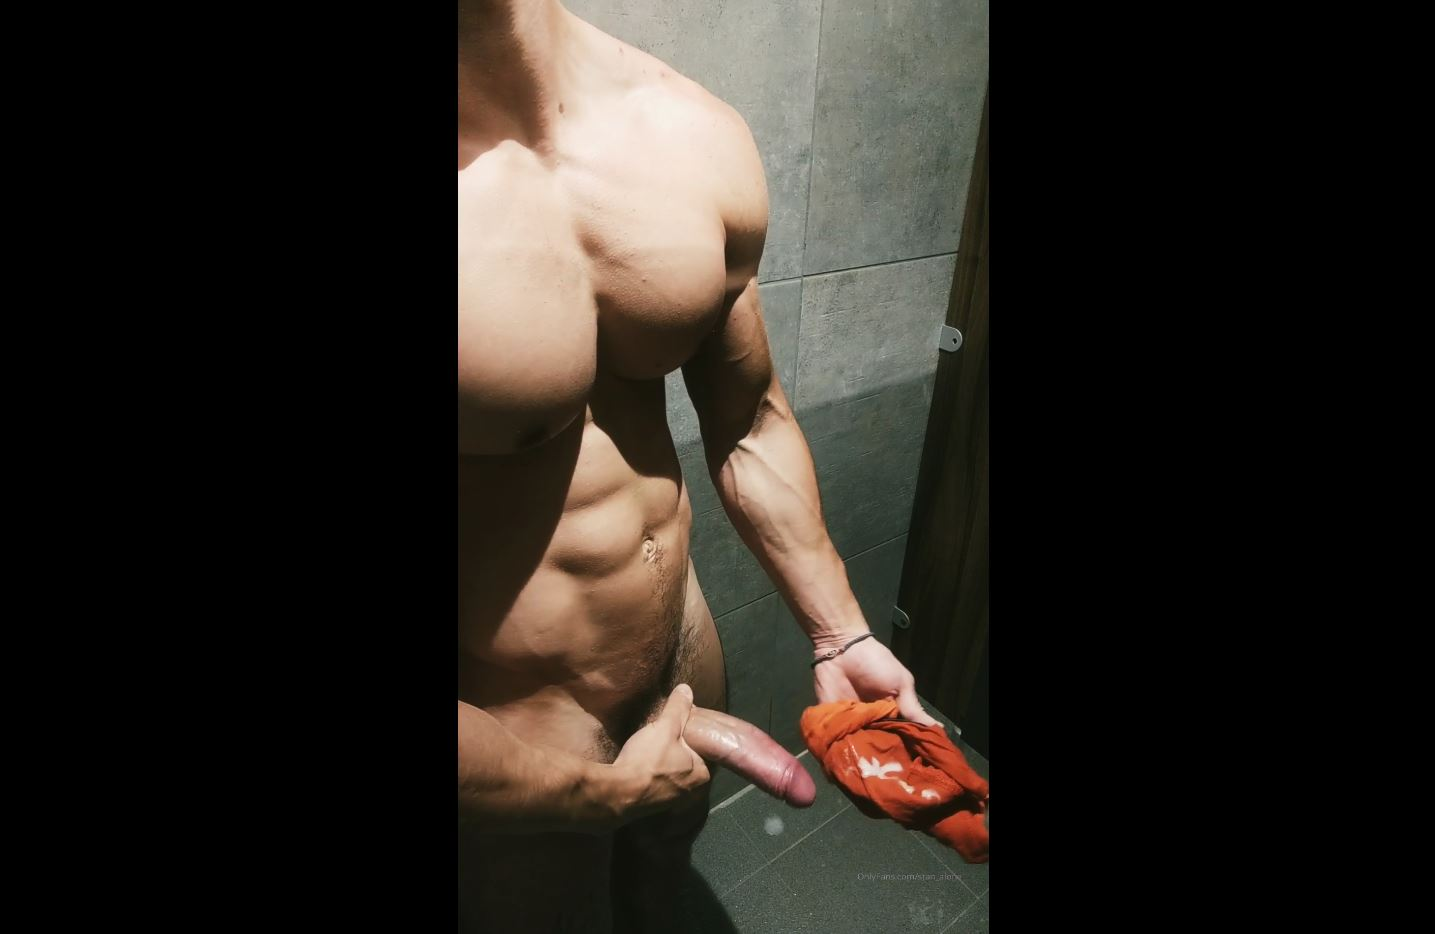 Jerking off in the gym shower and cumming over my underwear - Stan_alone4